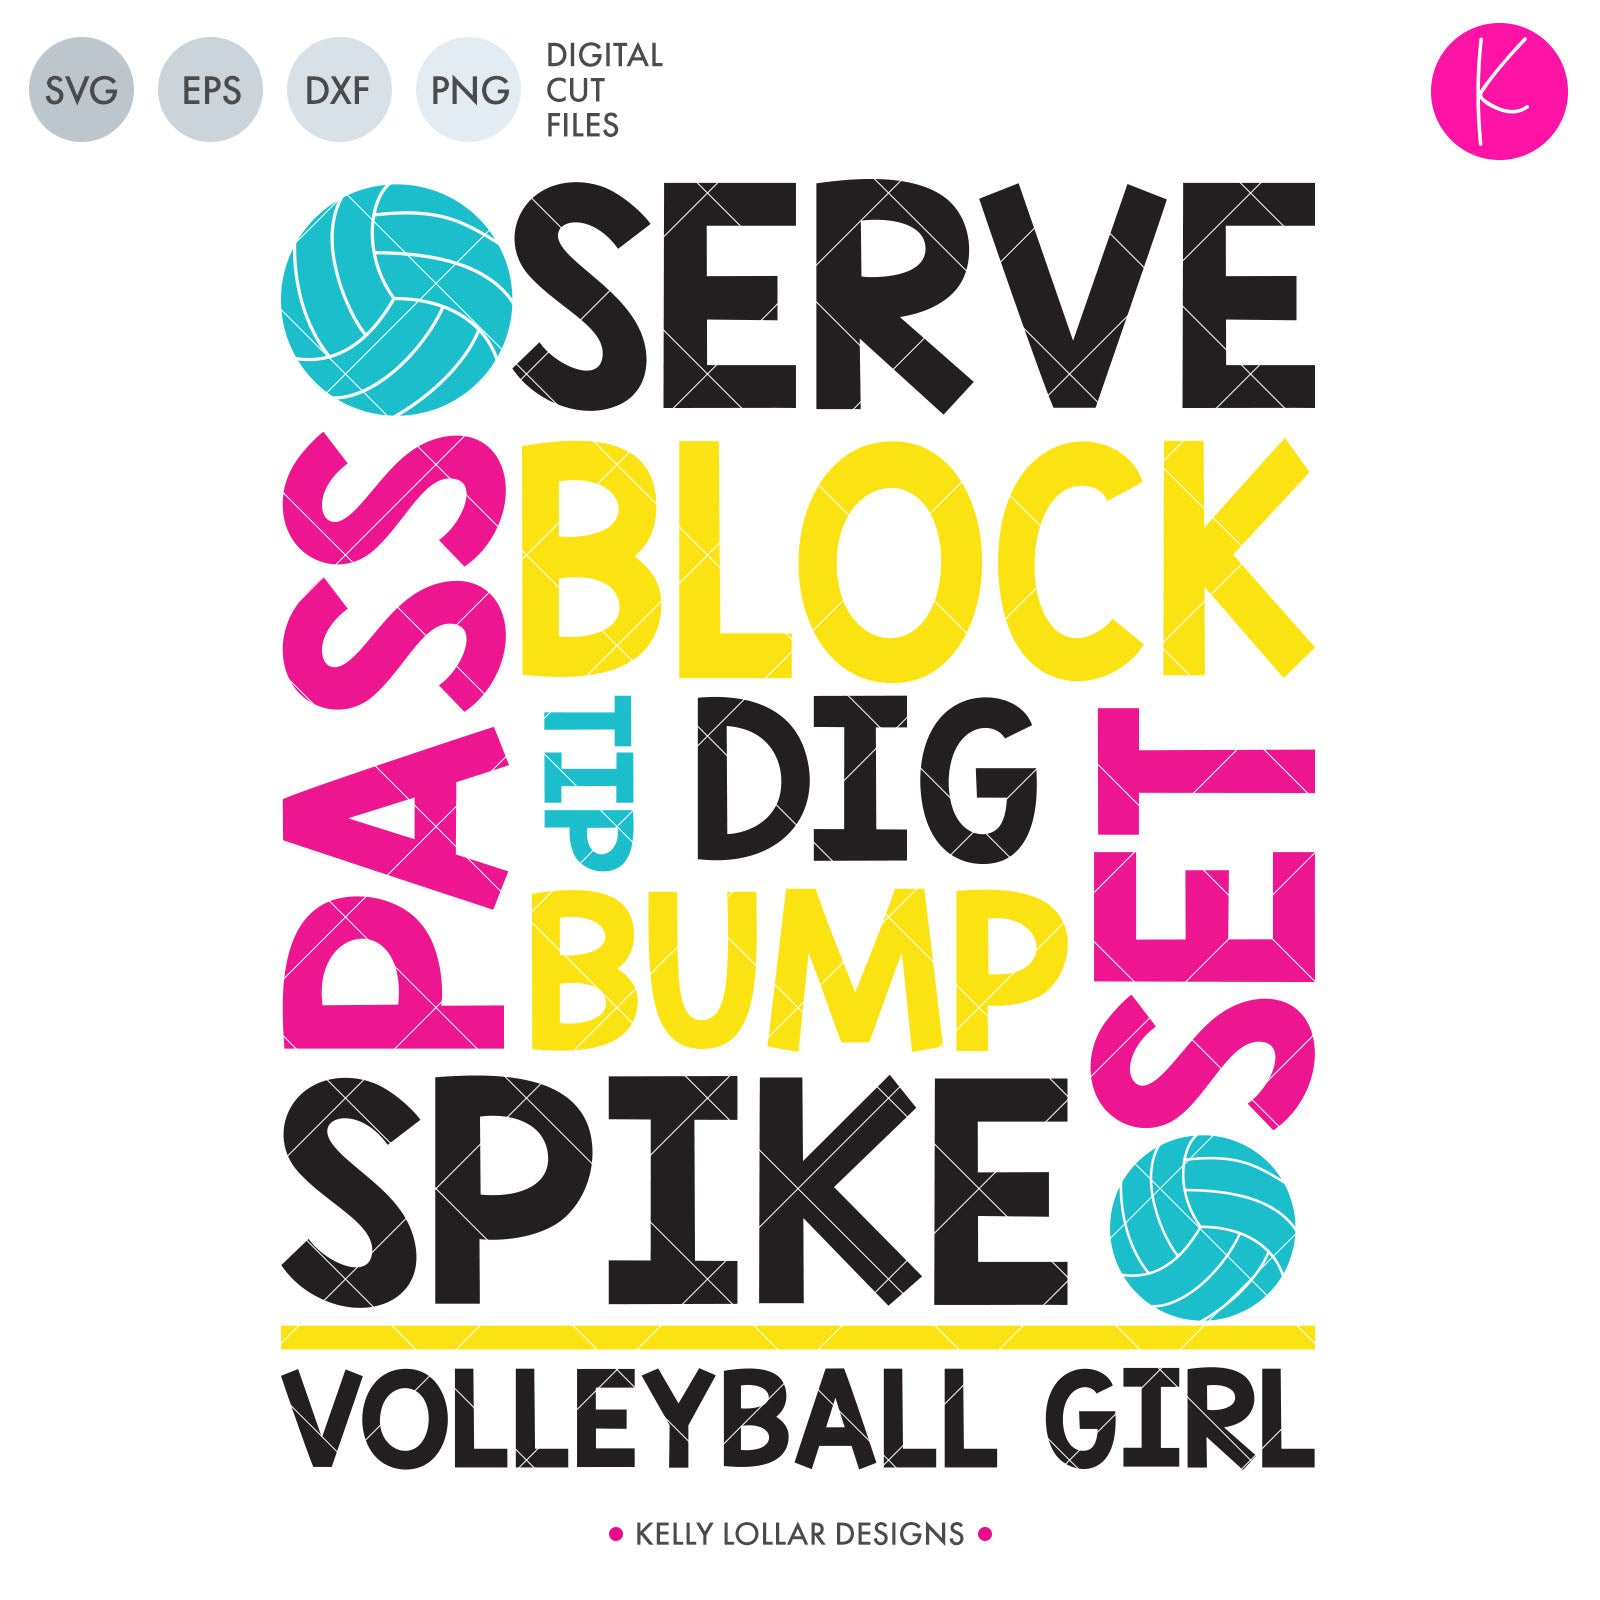 Sports Svg Dxf Eps Png Cut Files Kelly Lollar Designs